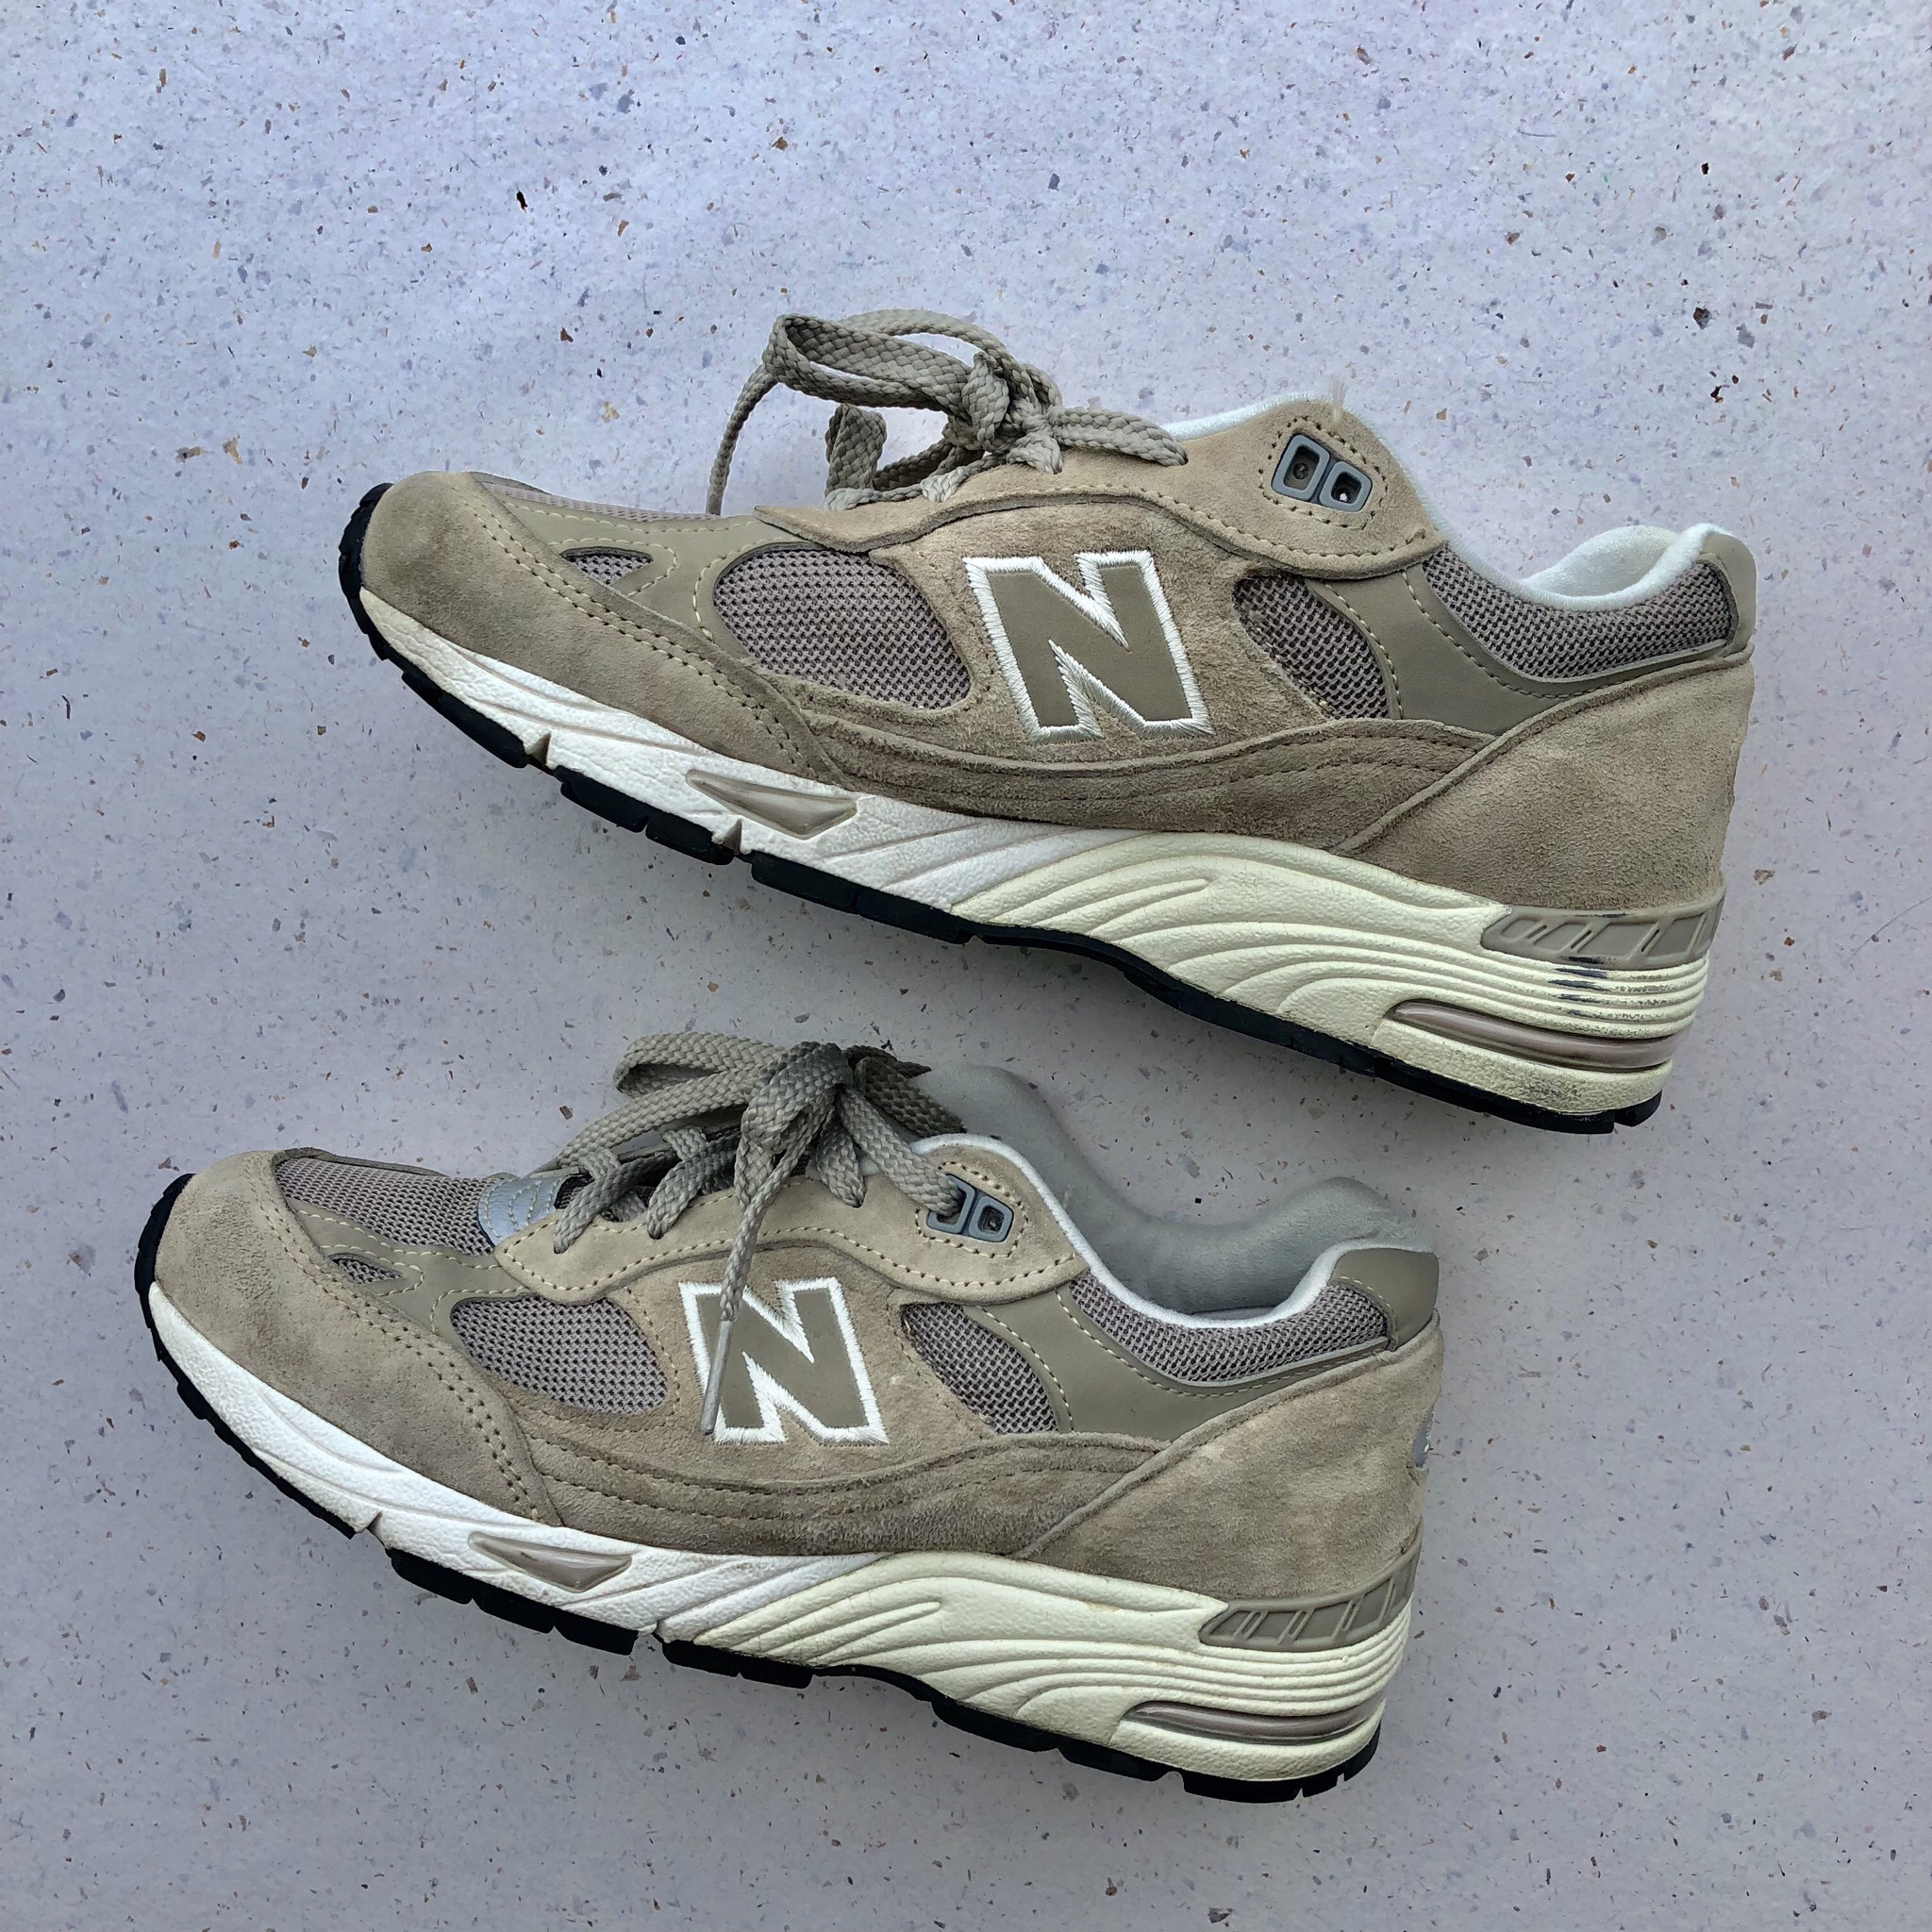 New Balance NB Suede Pig Skin Beige 991 Trainers Depop